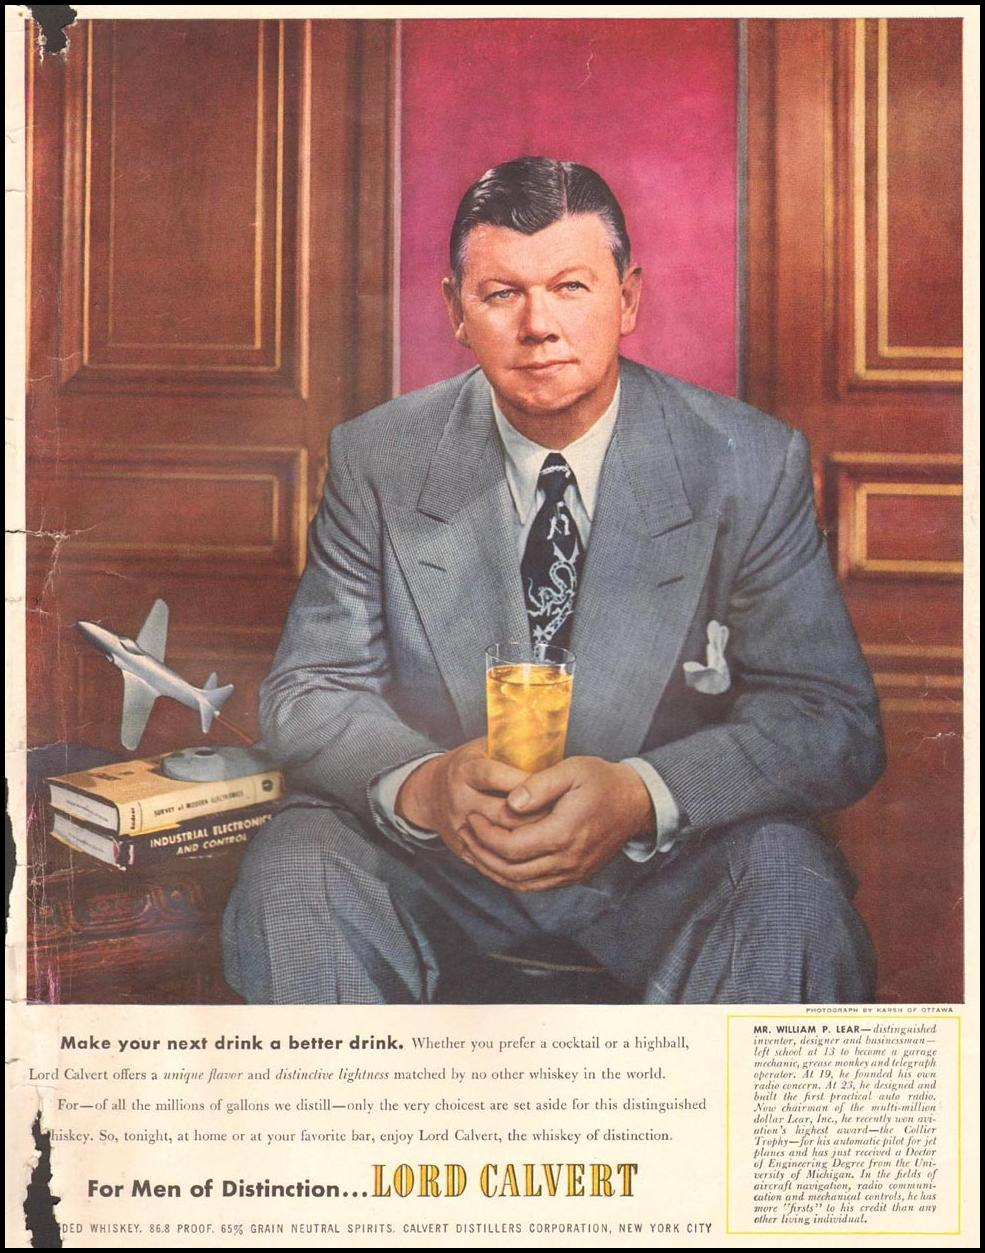 LORD CALVERT WHISKEY LIFE 10/01/1951 INSIDE BACK